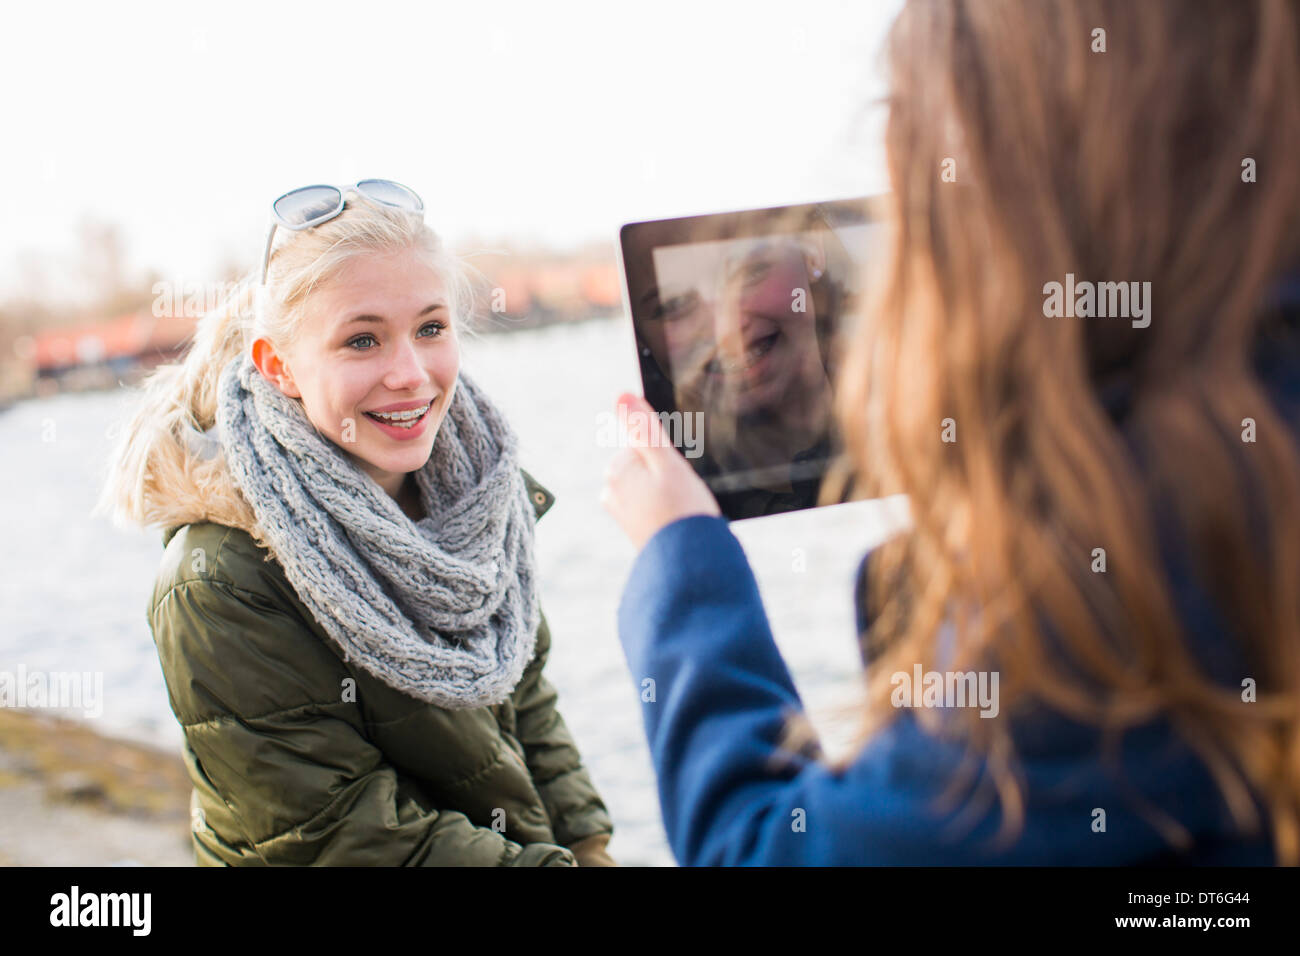 Teenage girl photographing friend with digital tablet - Stock Image